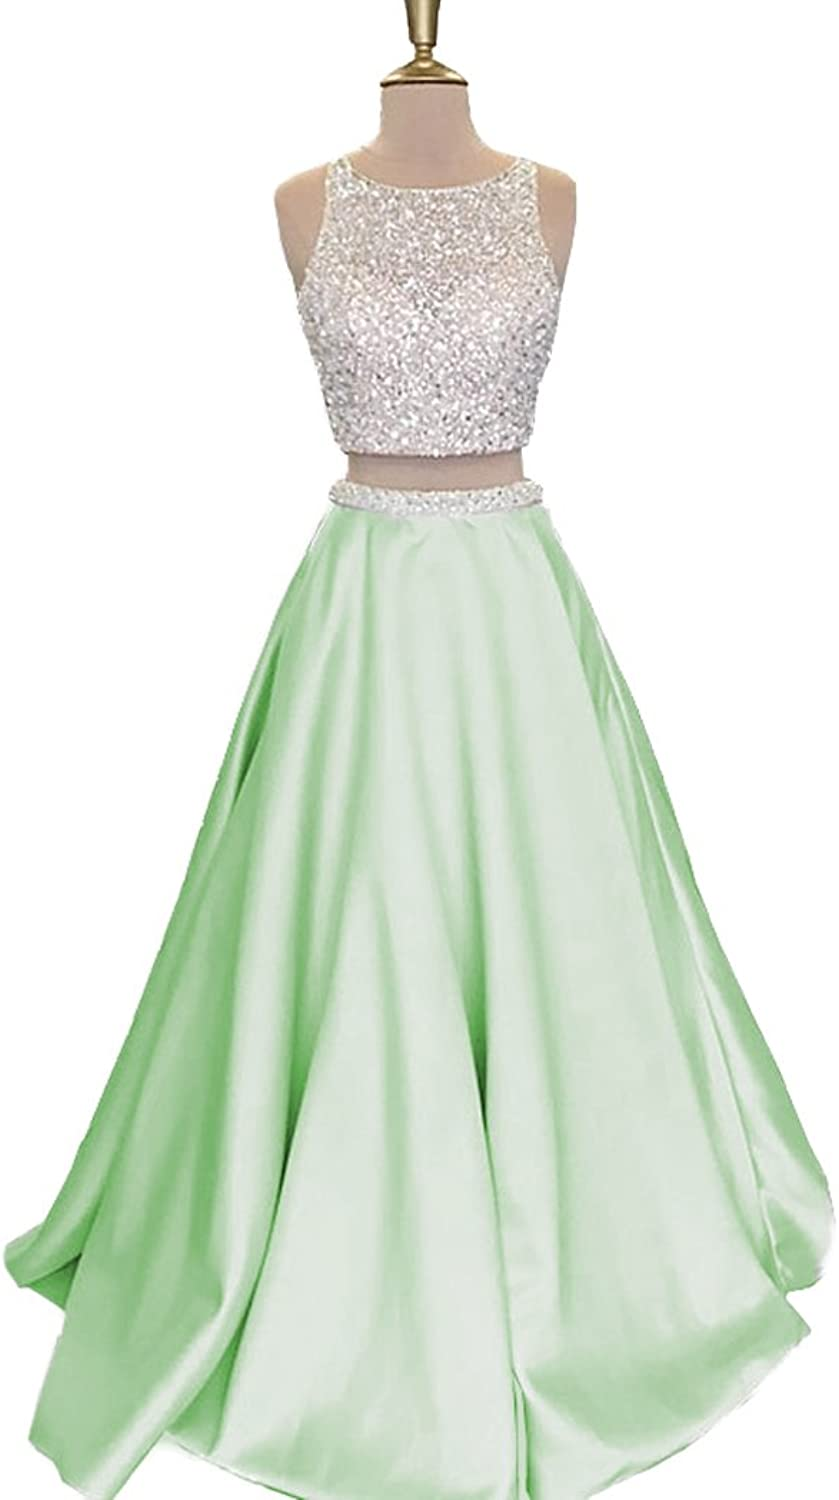 QiJunGe Silver Beaded Two Piece Prom Dress Backless Formal Evening Party Gowns